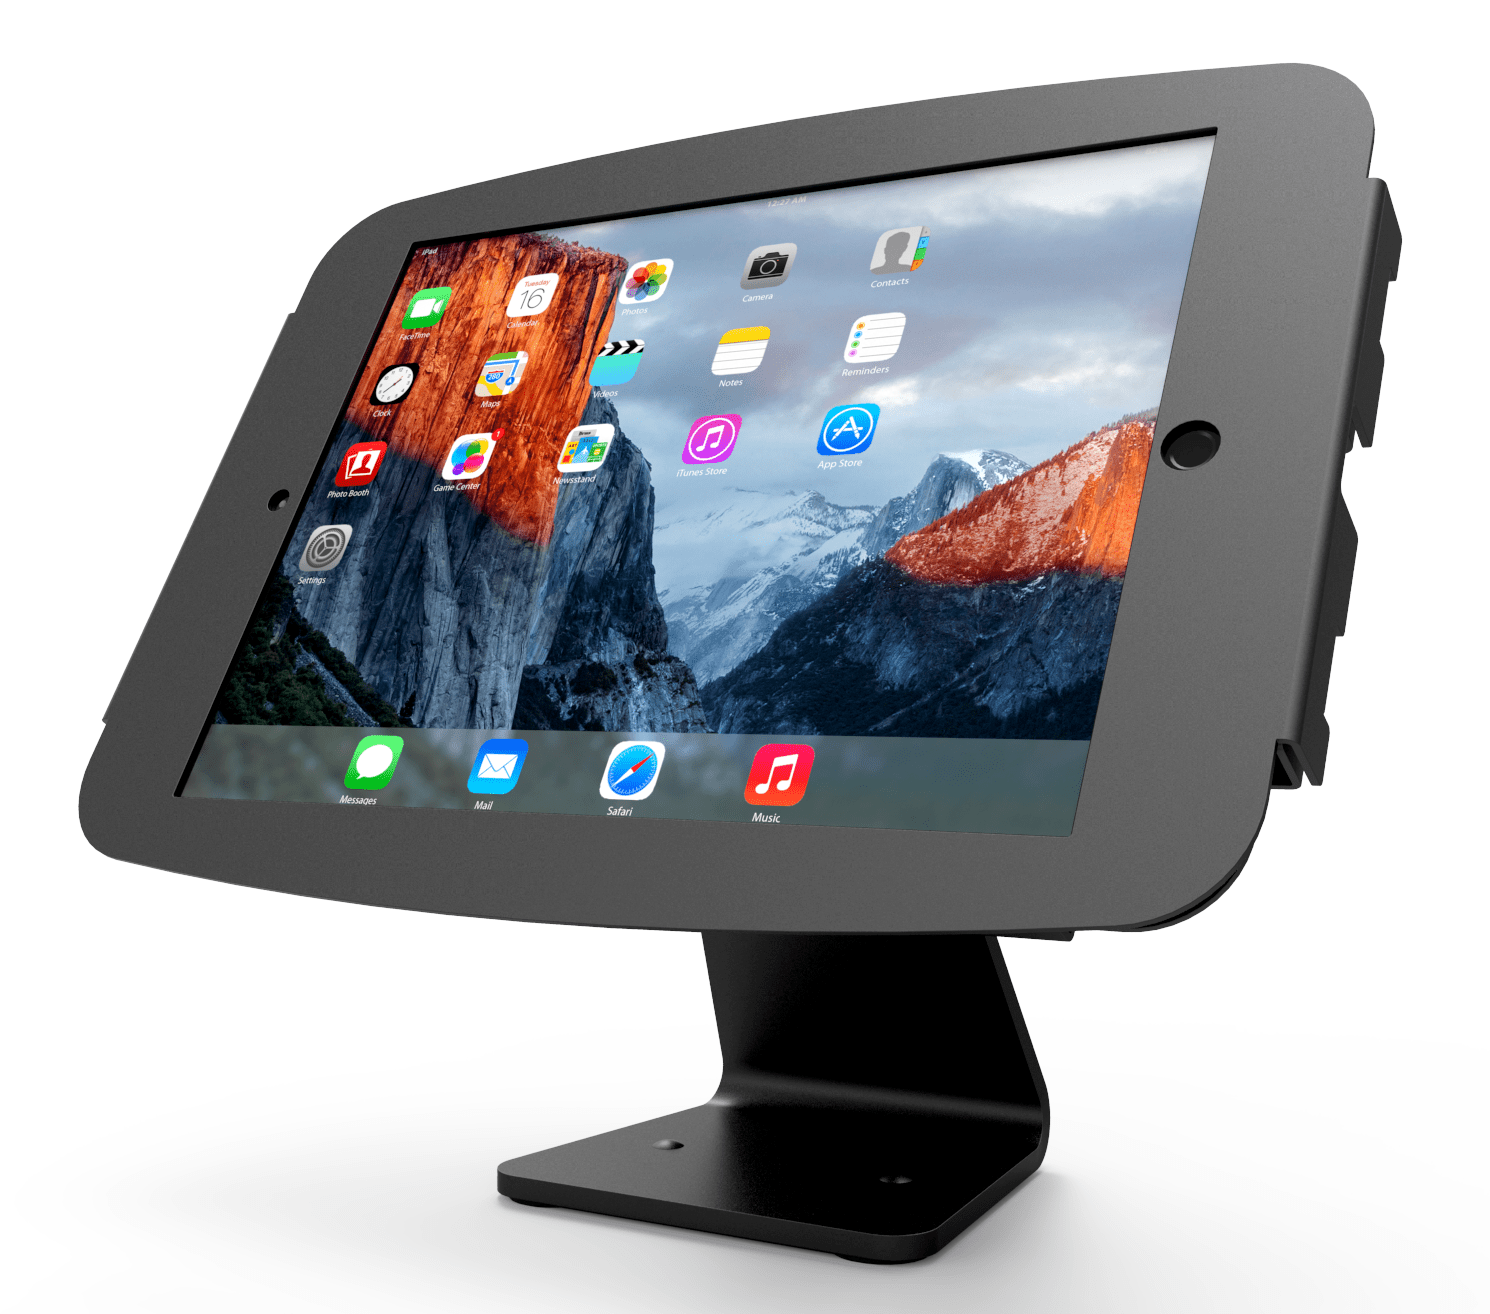 Ipad Pro Kiosk Self Check Is The Newest Trend In Major